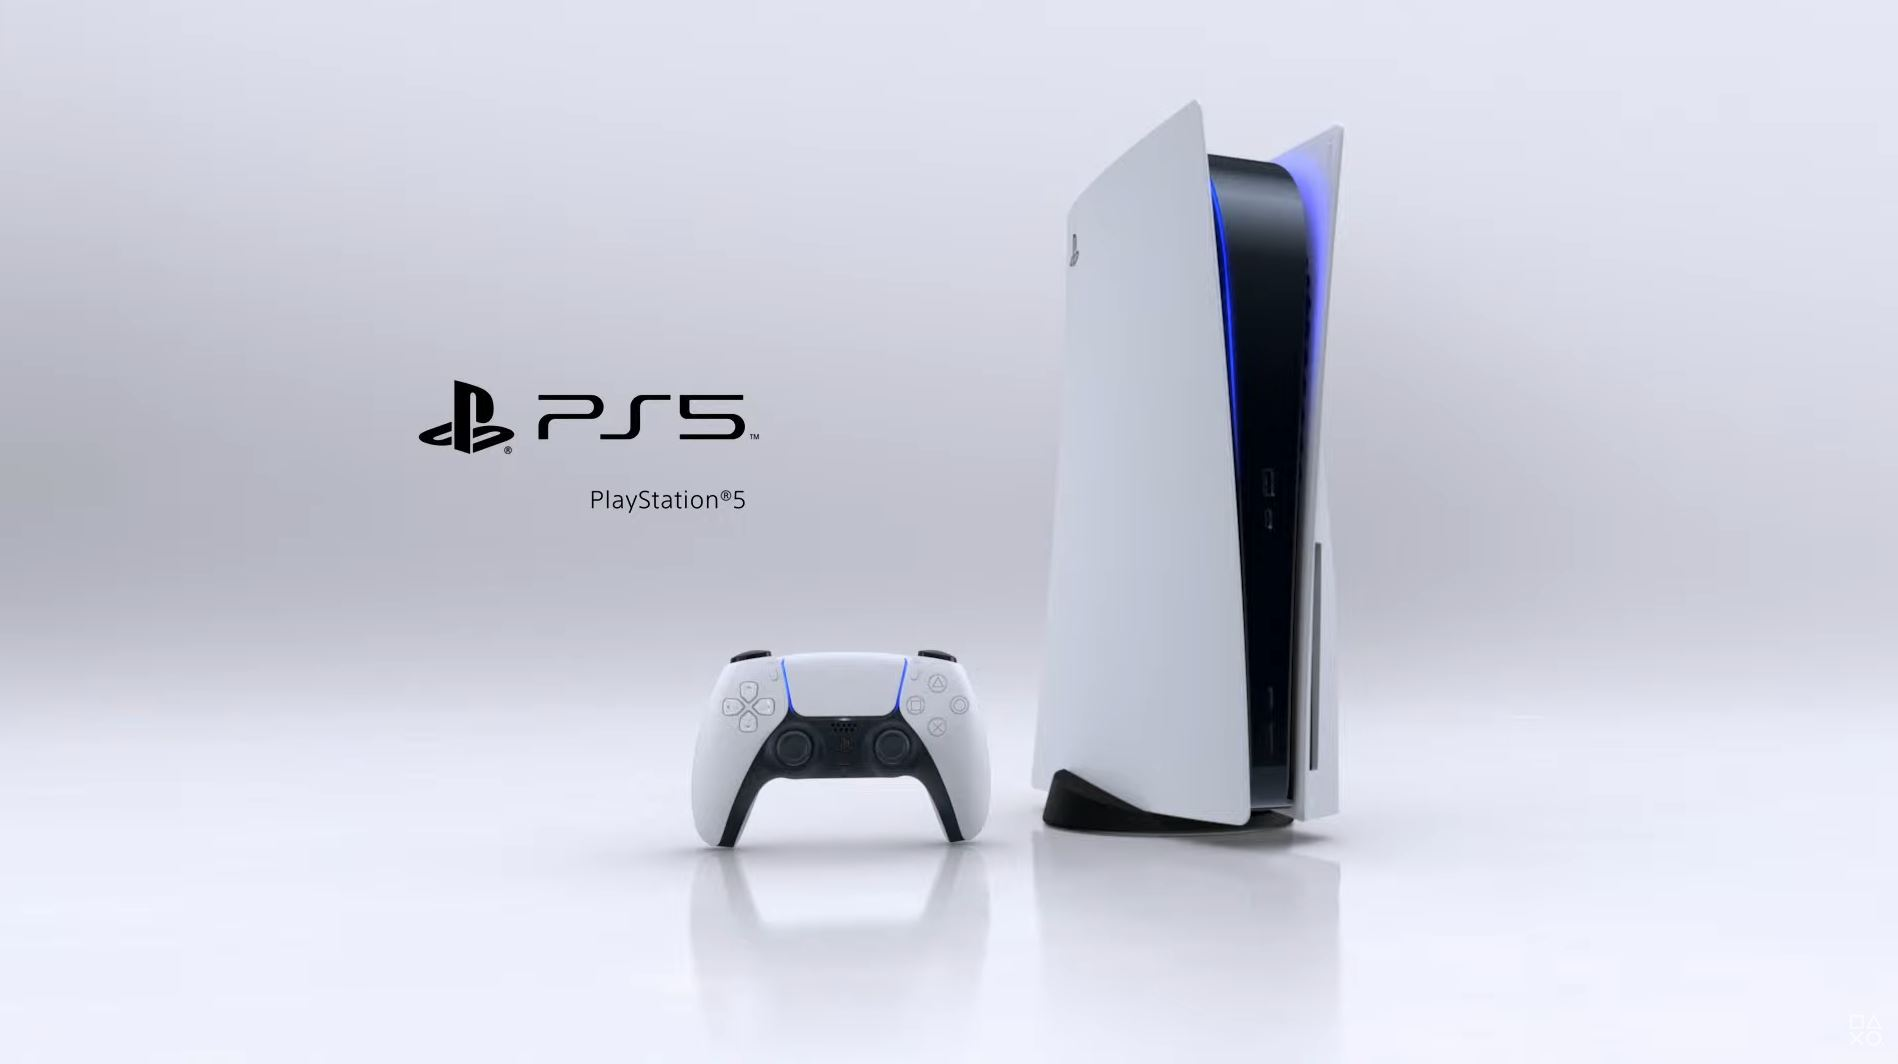 The Ps5 Reveal Was Huge Here S What Mattered Slashgear